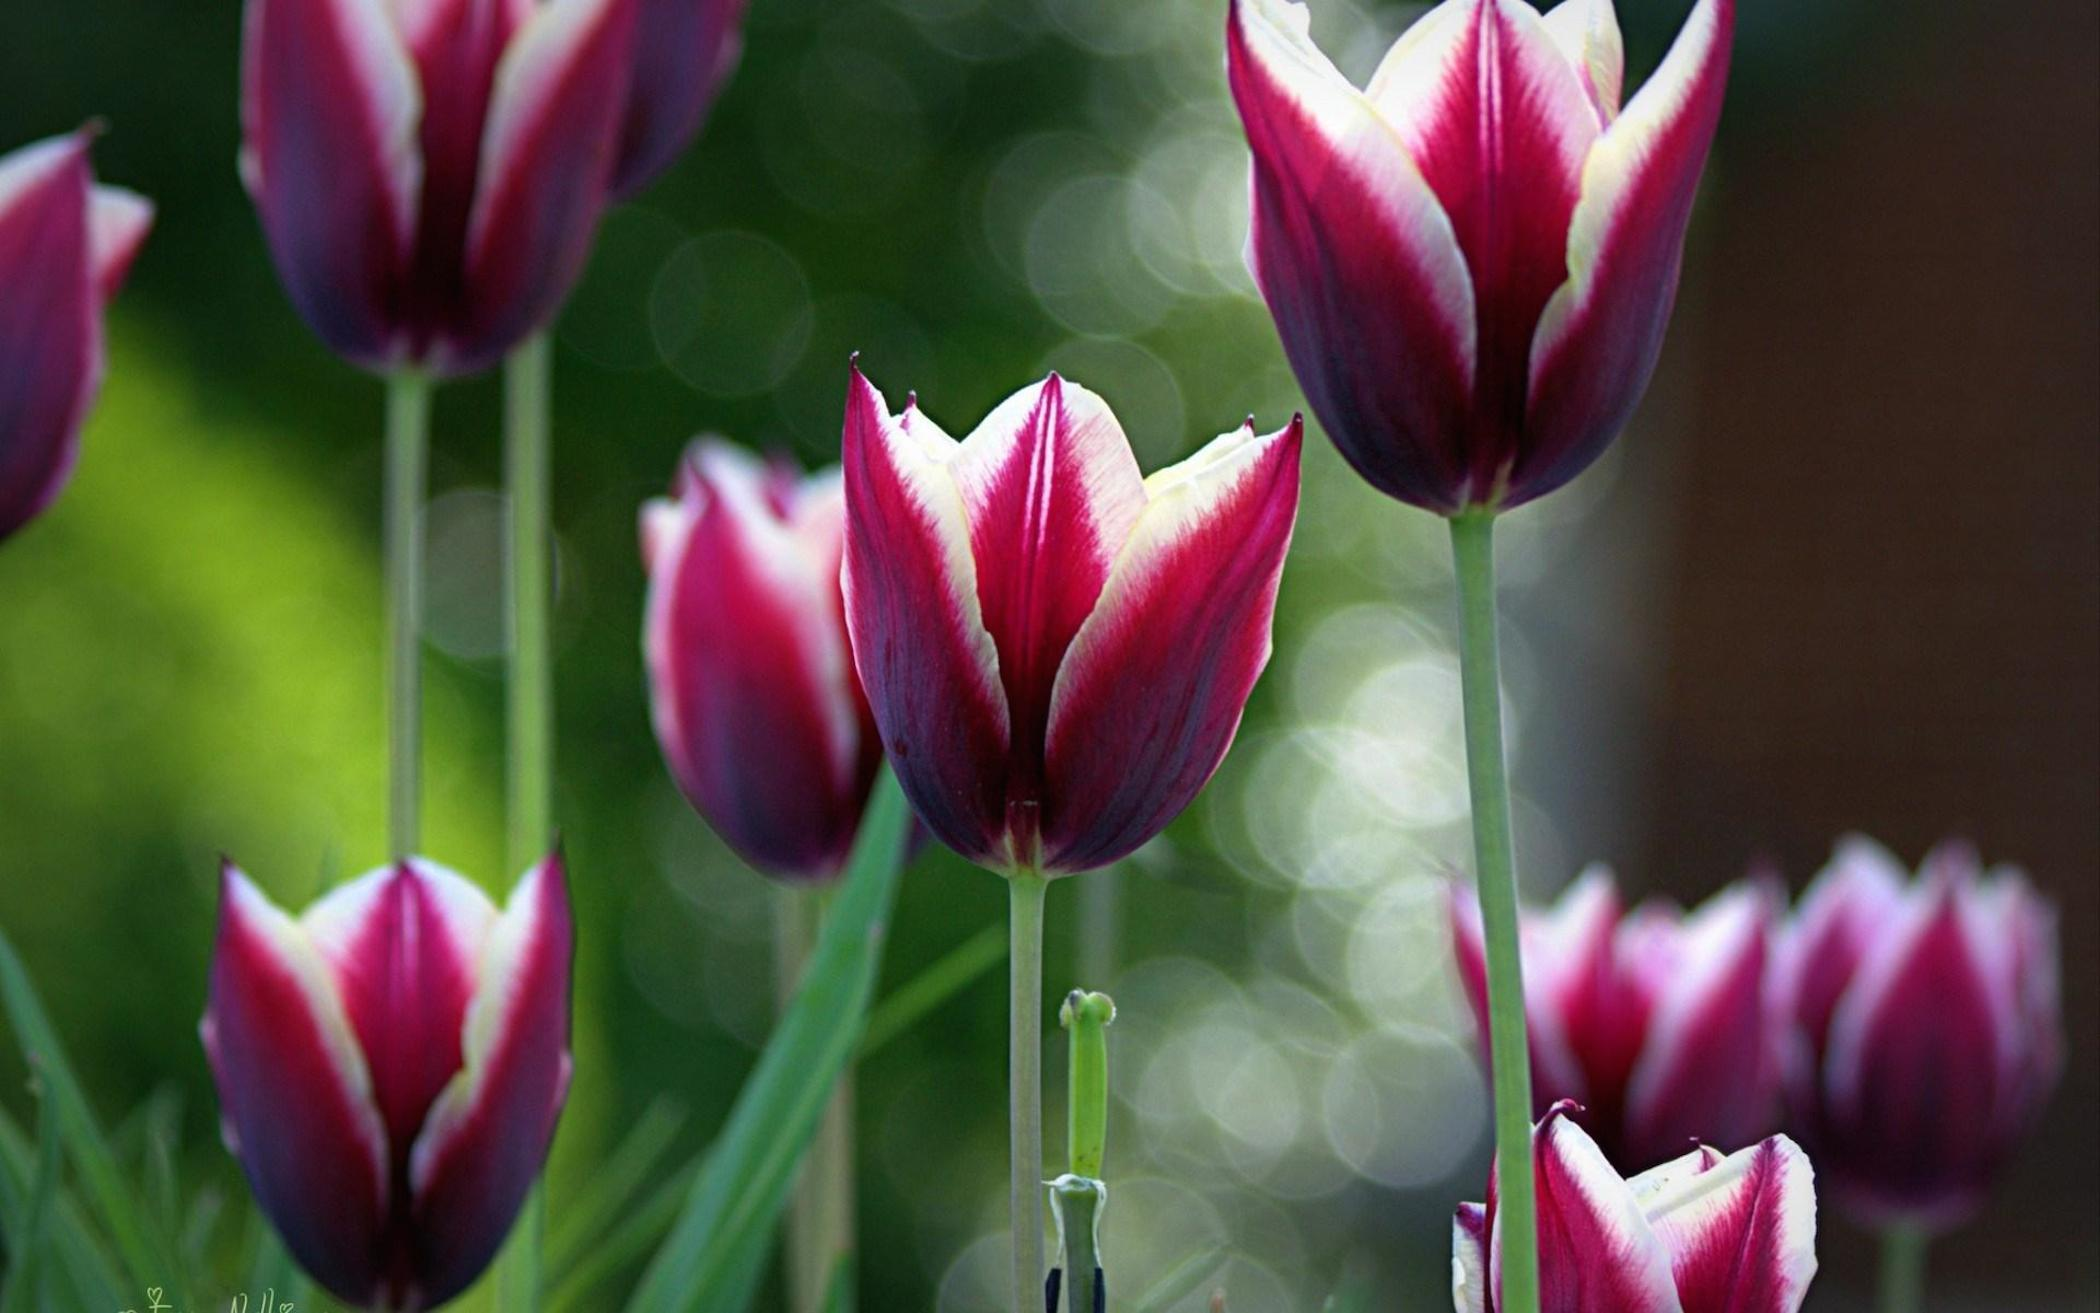 spring city tulips wallpaper - photo #20